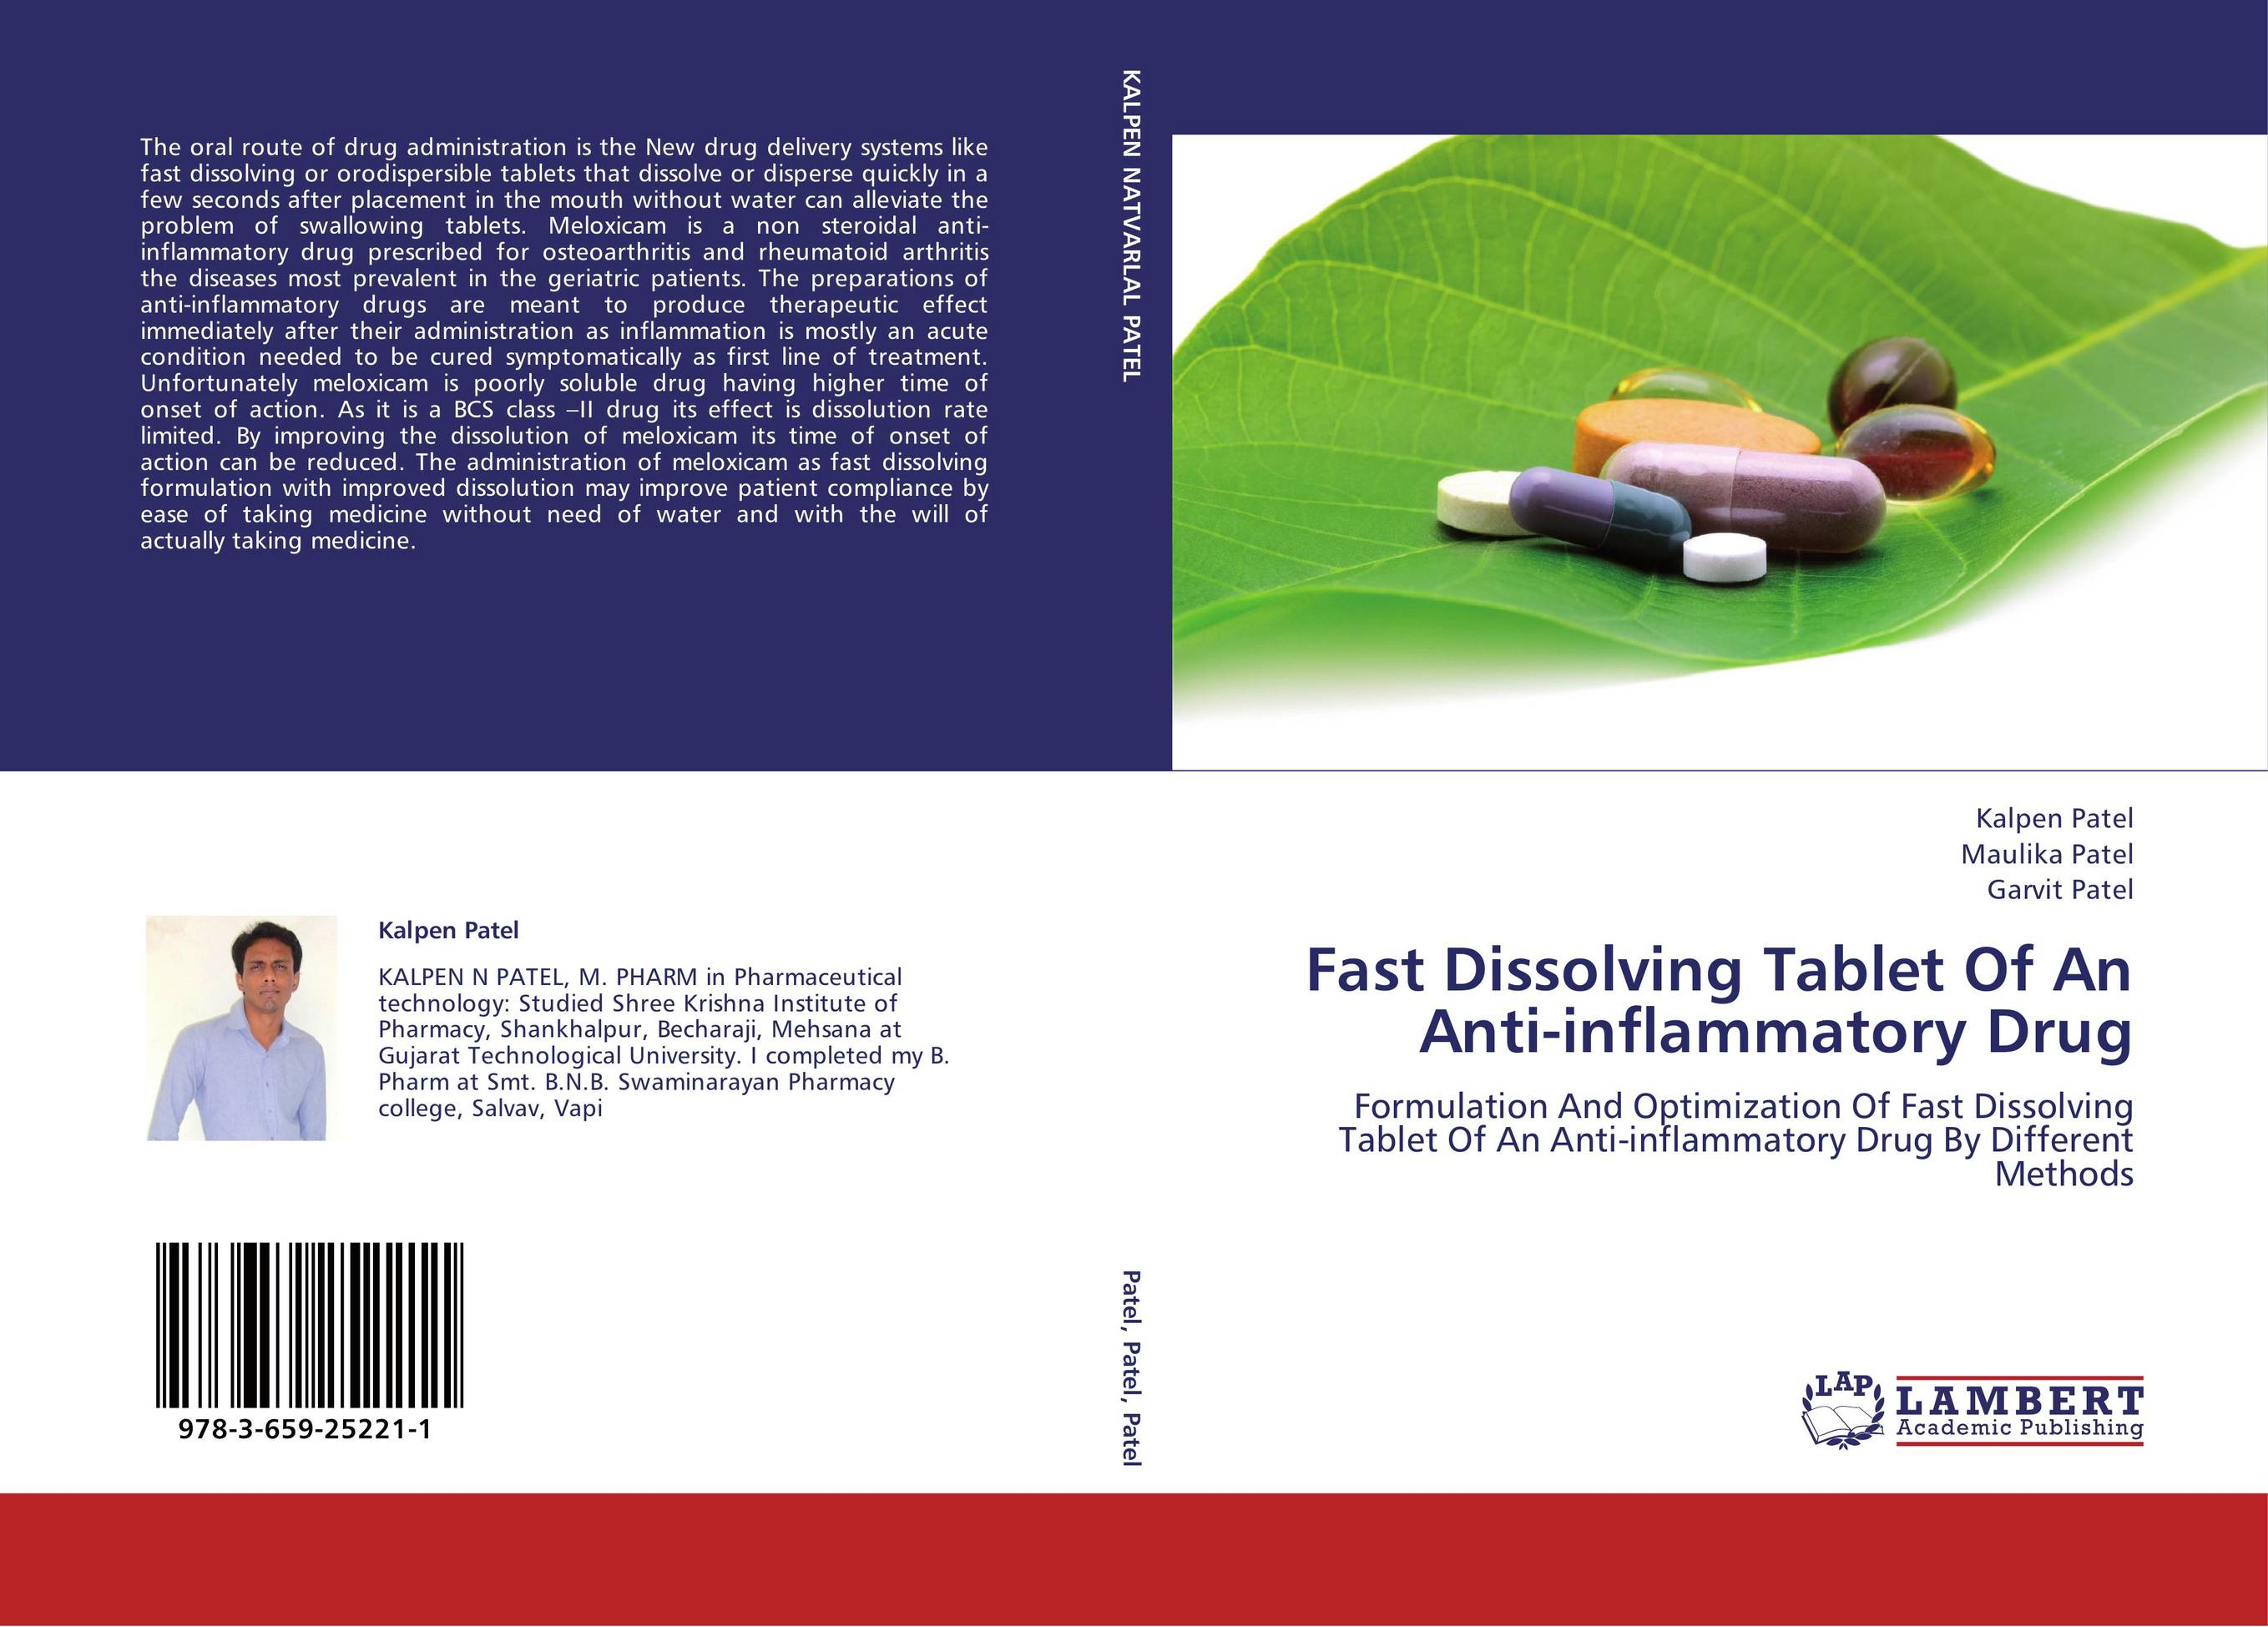 introduction to fast dissolving drug delivery system biology essay How to conduct your background research, including tips on preparing a research plan and identifying good research sources.